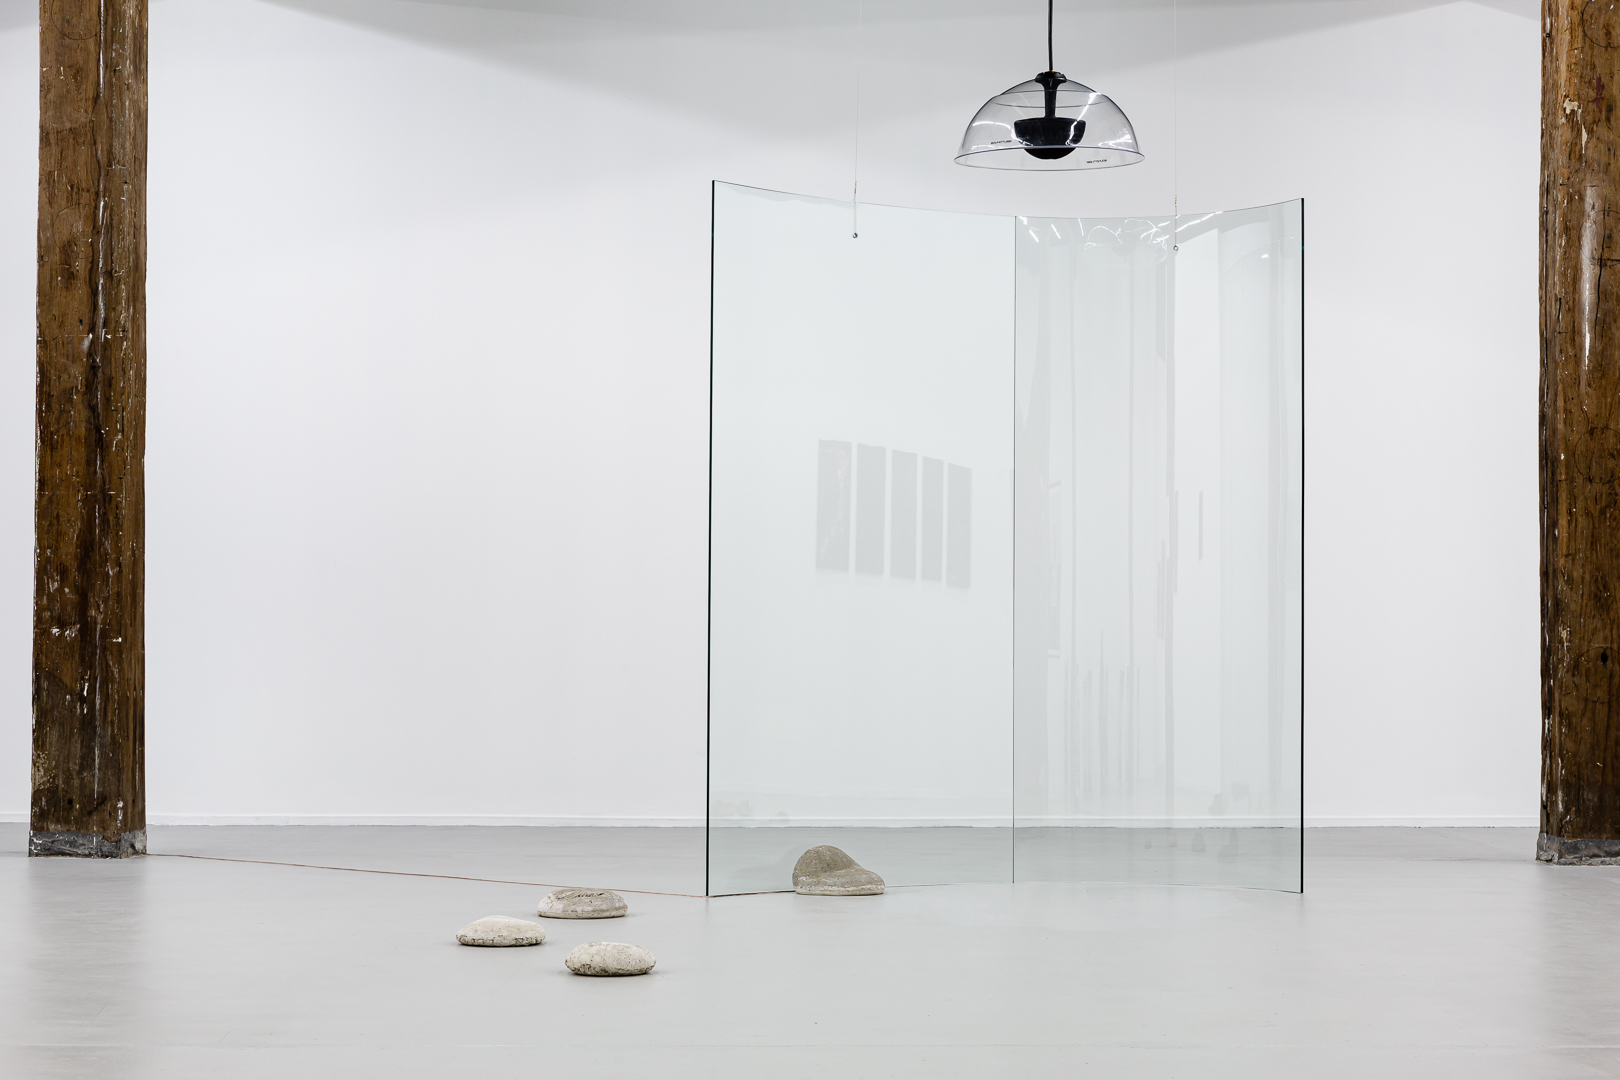 Akhil Ahamat, 'Unchained Melody', 2020